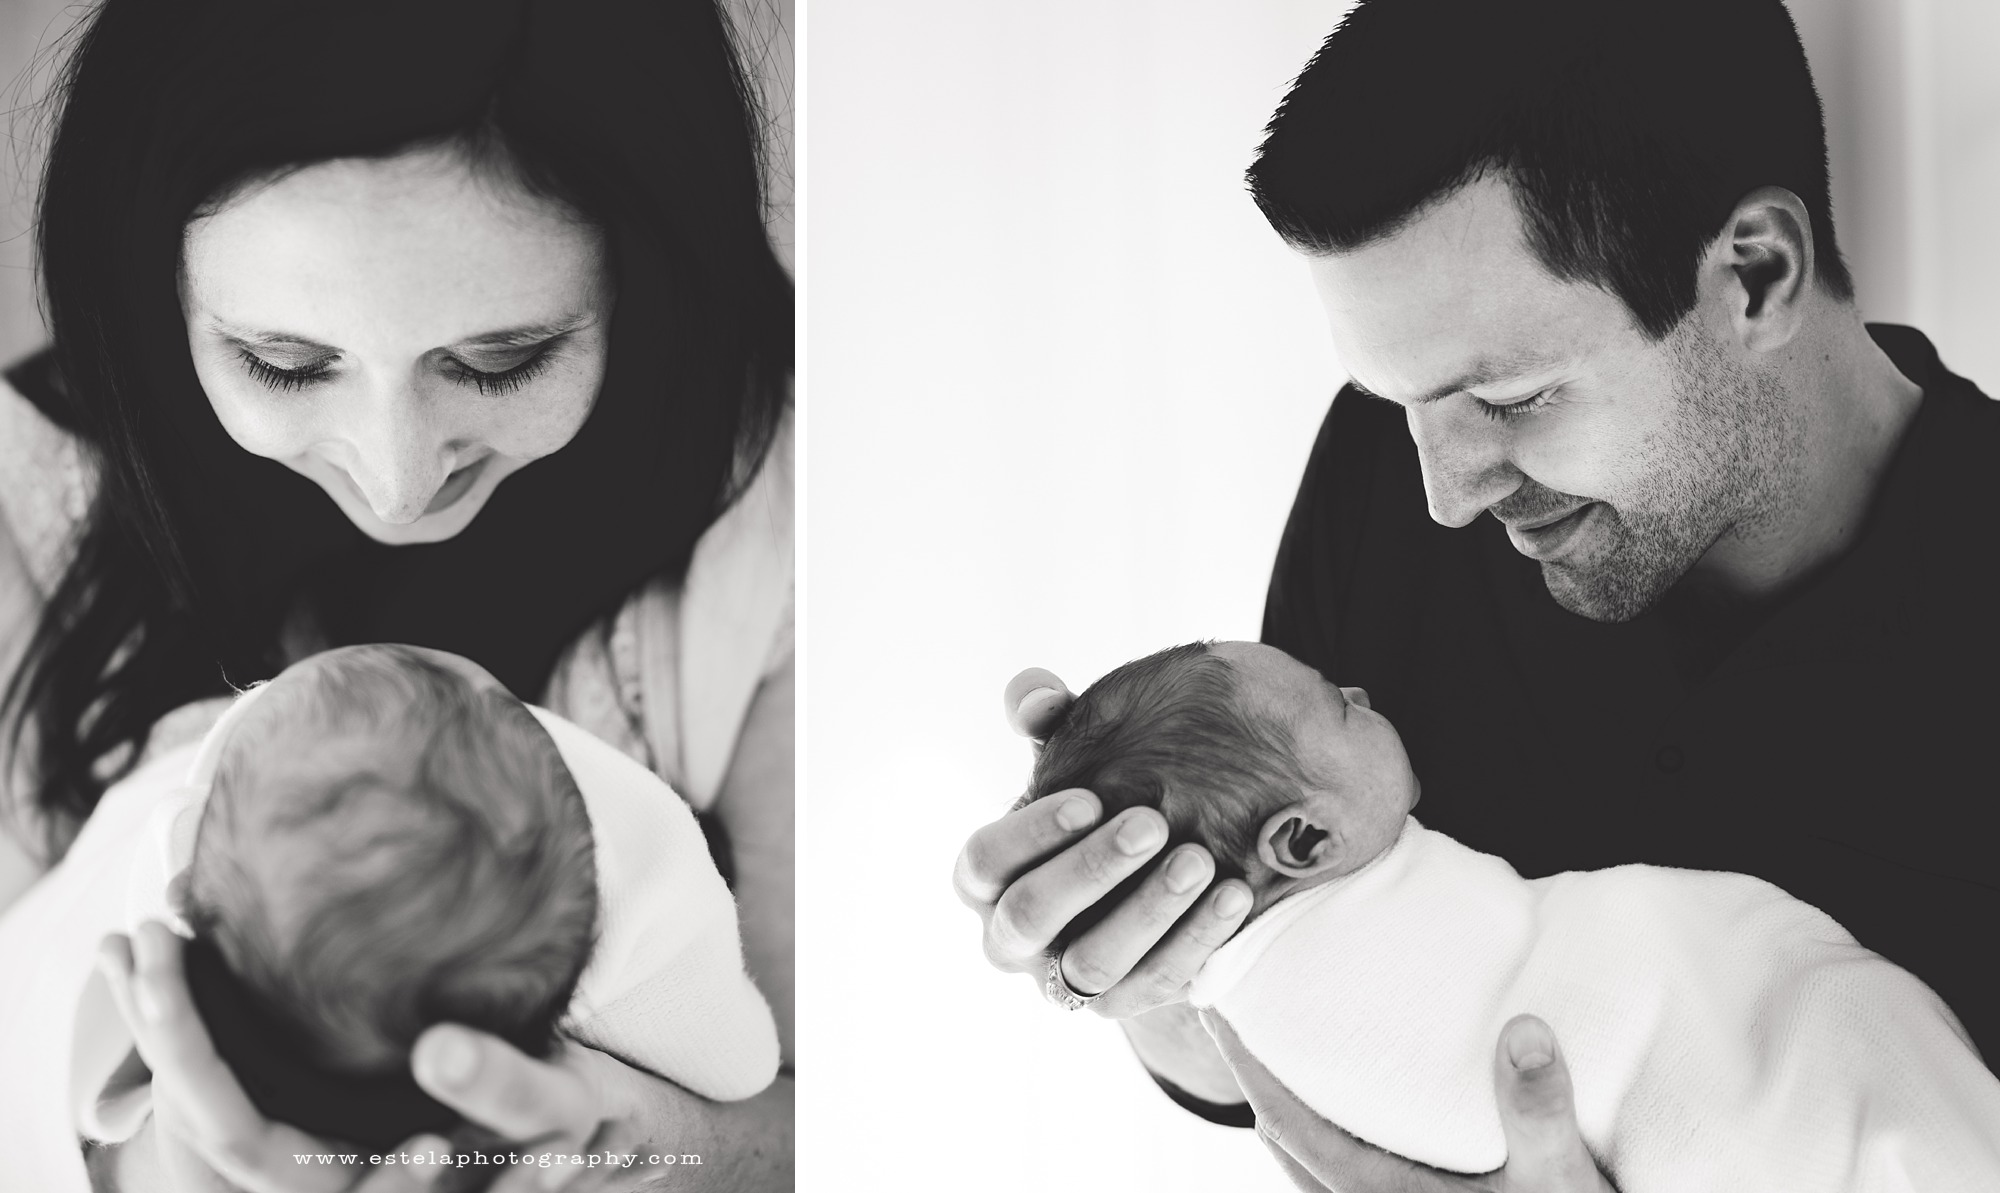 A mother and father admire their baby, captured by Estela Giargei Photography, a Houston Newborn Photographer